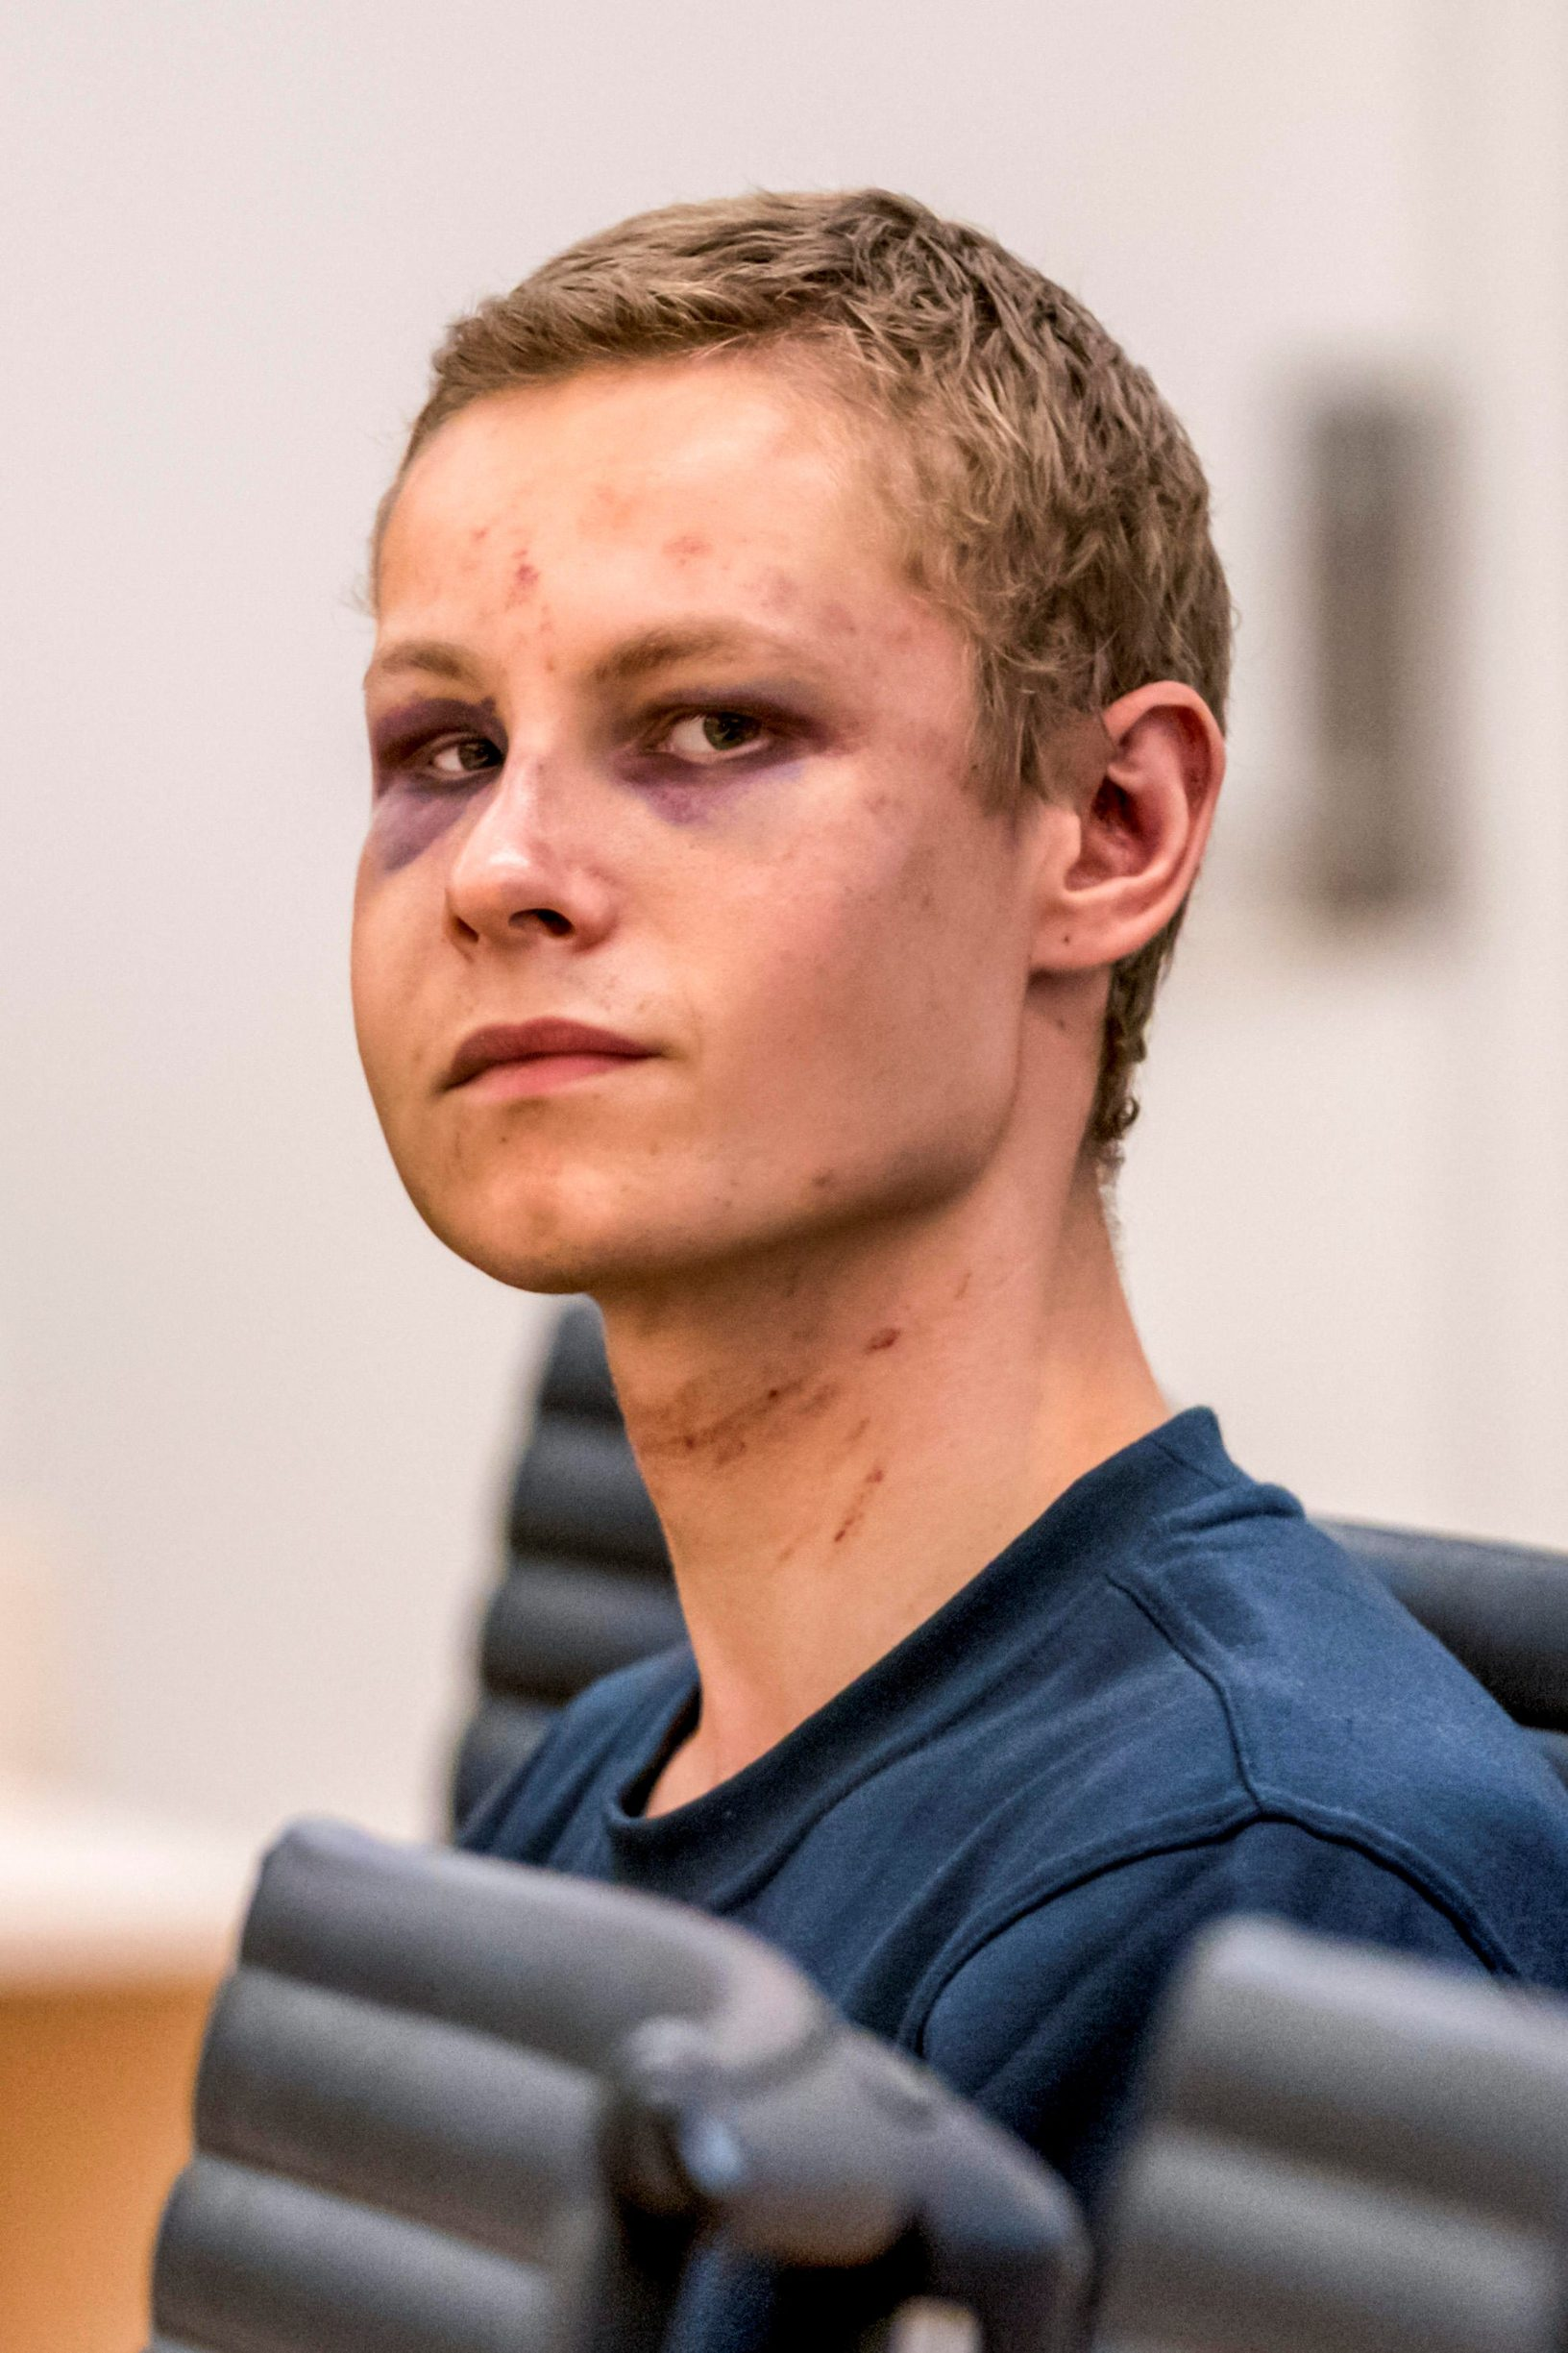 Philip Manshaus, who is suspected of an armed attack at Al-Noor Islamic Centre Mosque and killing his stepsister, appears in court in Oslo, Norway, August 12, 2019. NTB Scanpix/Cornelius Poppe via REUTERS ATTENTION EDITORS - THIS IMAGE WAS PROVIDED BY A THIRD PARTY. NORWAY OUT. NO COMMERCIAL OR EDITORIAL SALES IN NORWAY.